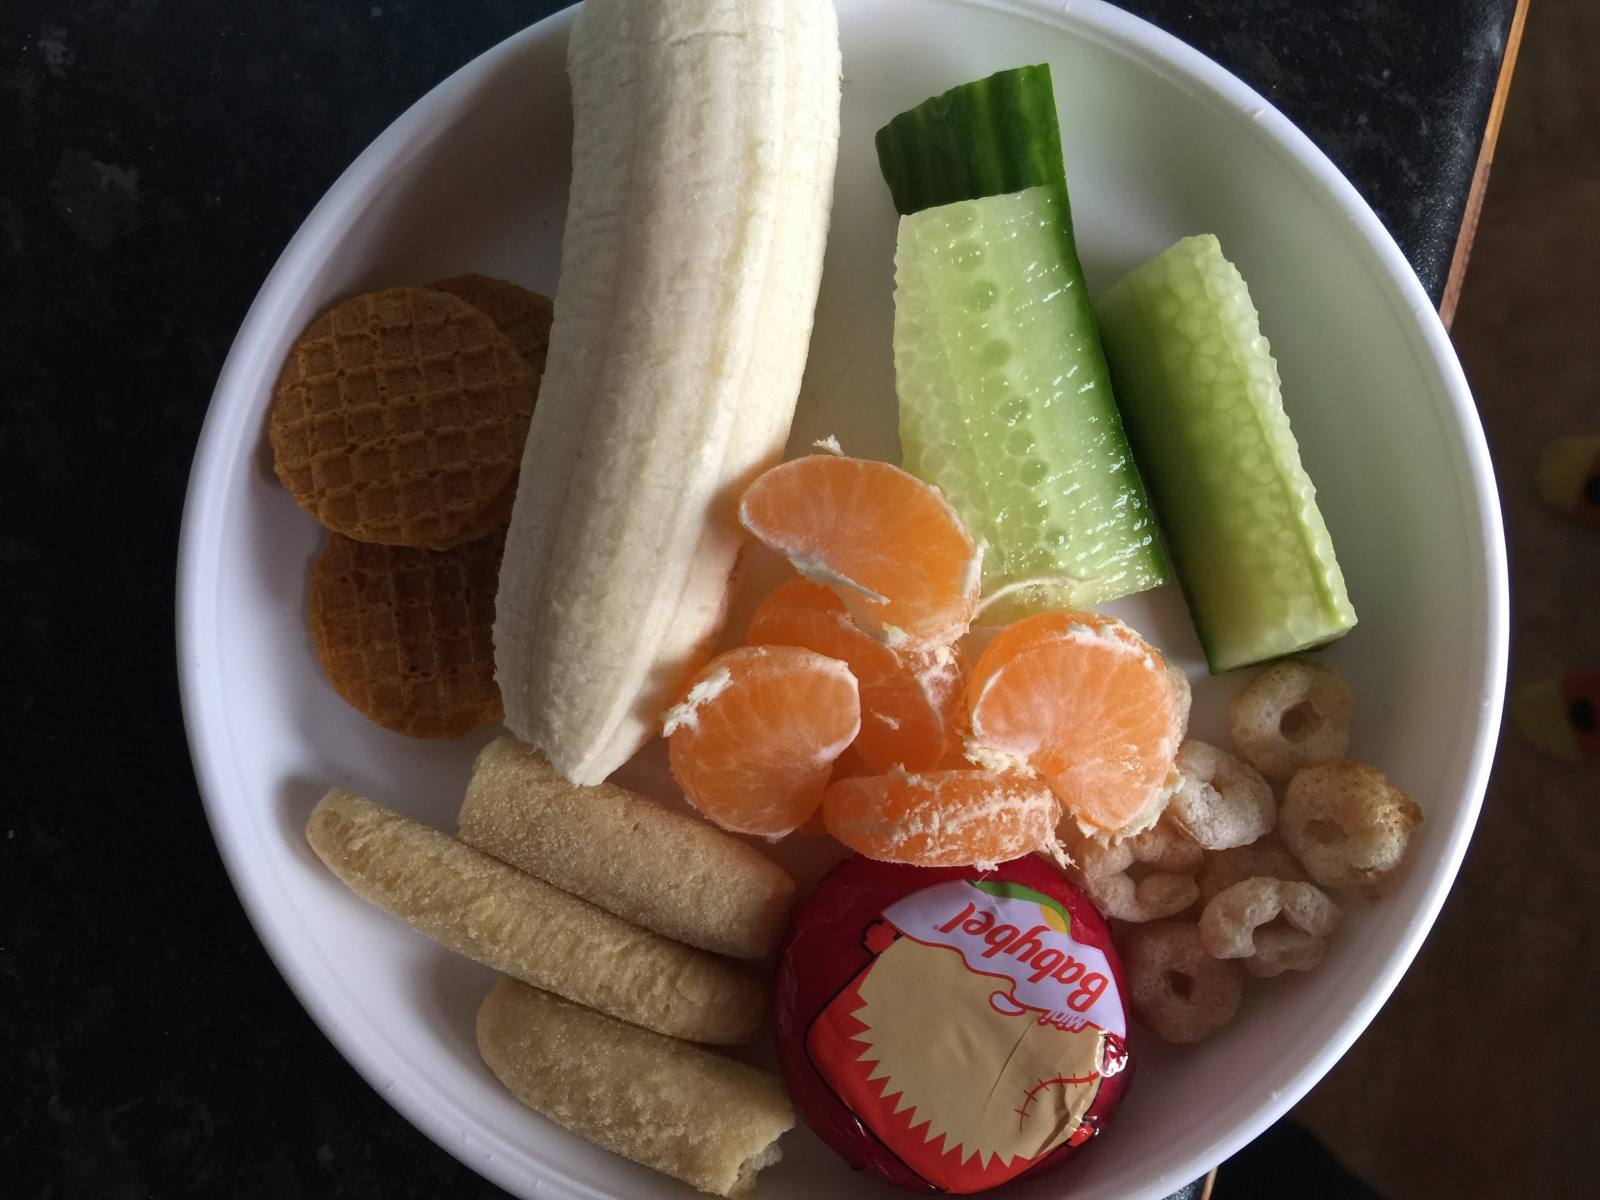 heavenly tasty organics toddler snack lunch